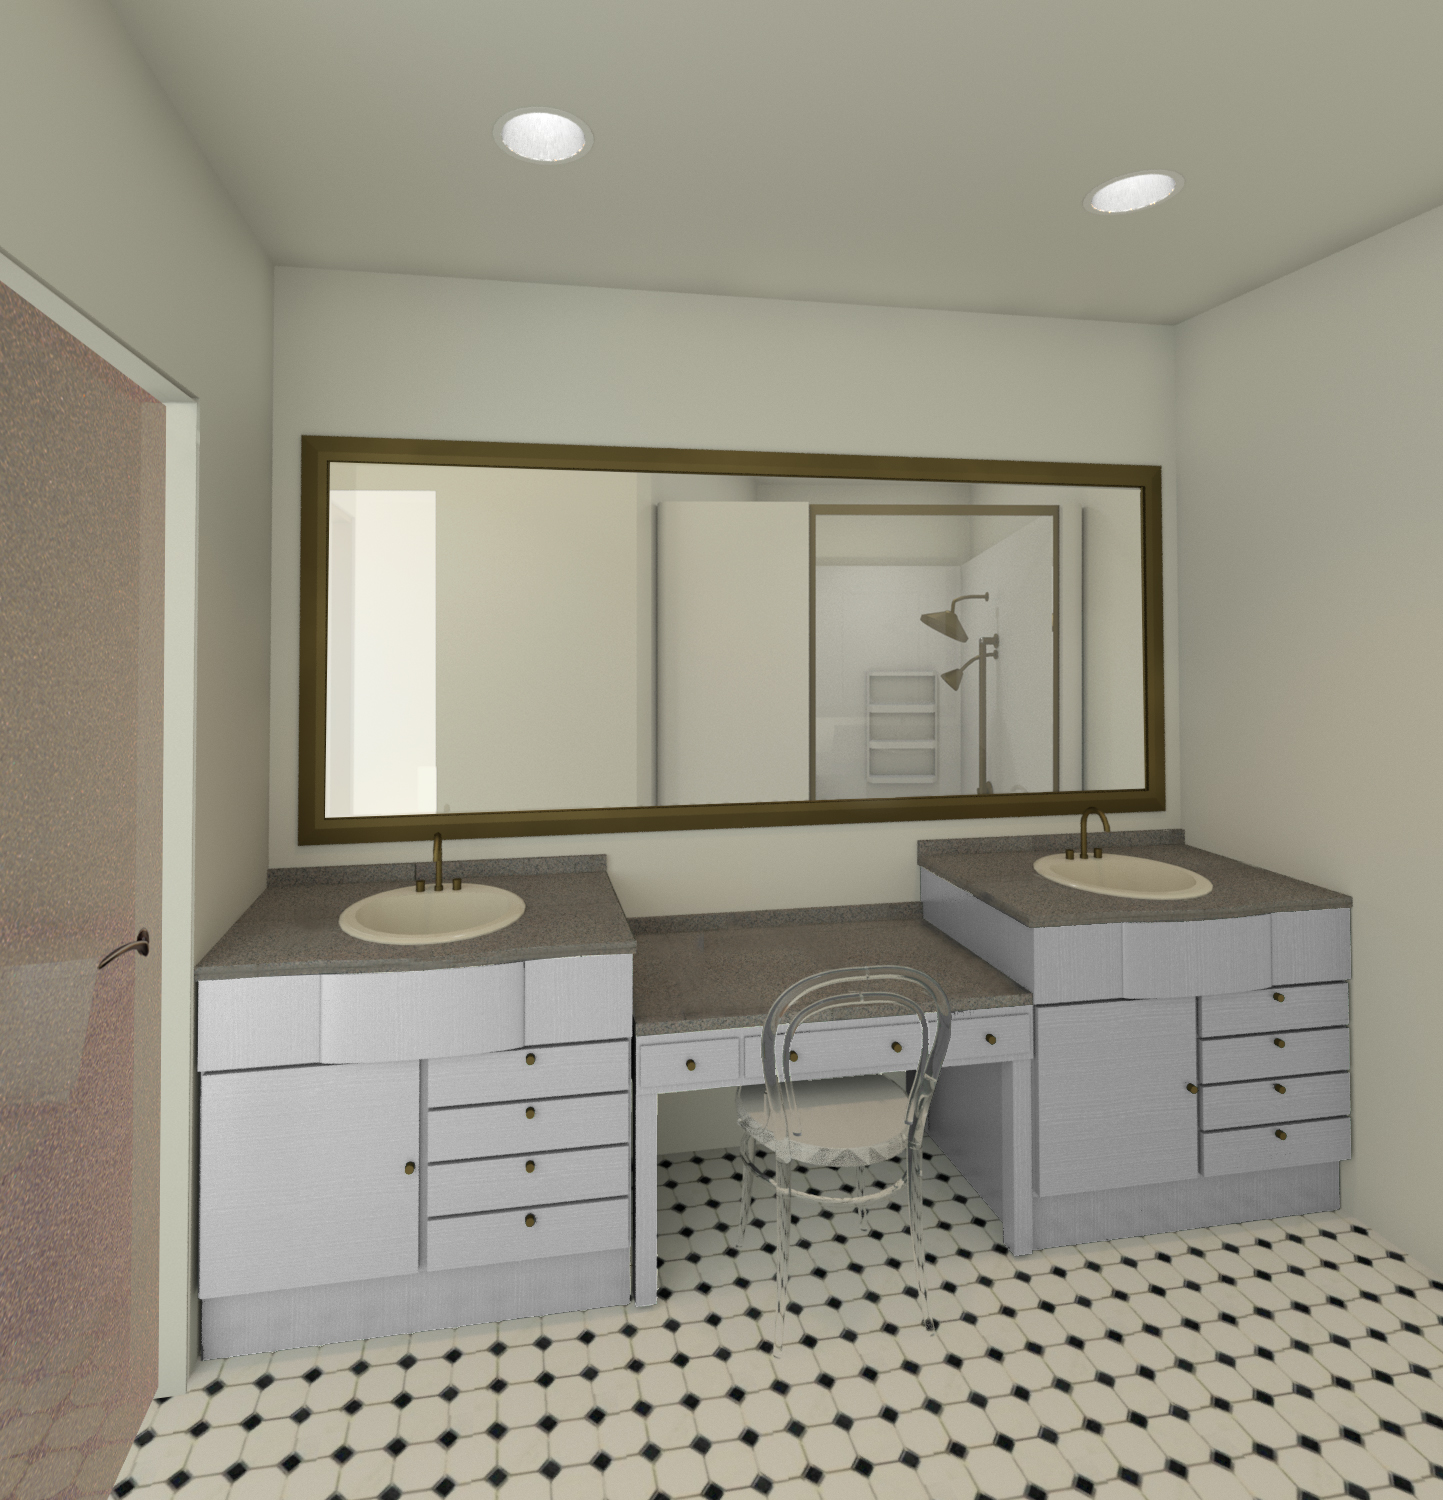 Philadelphia bathroom design plato studio Bathroom design centers philadelphia